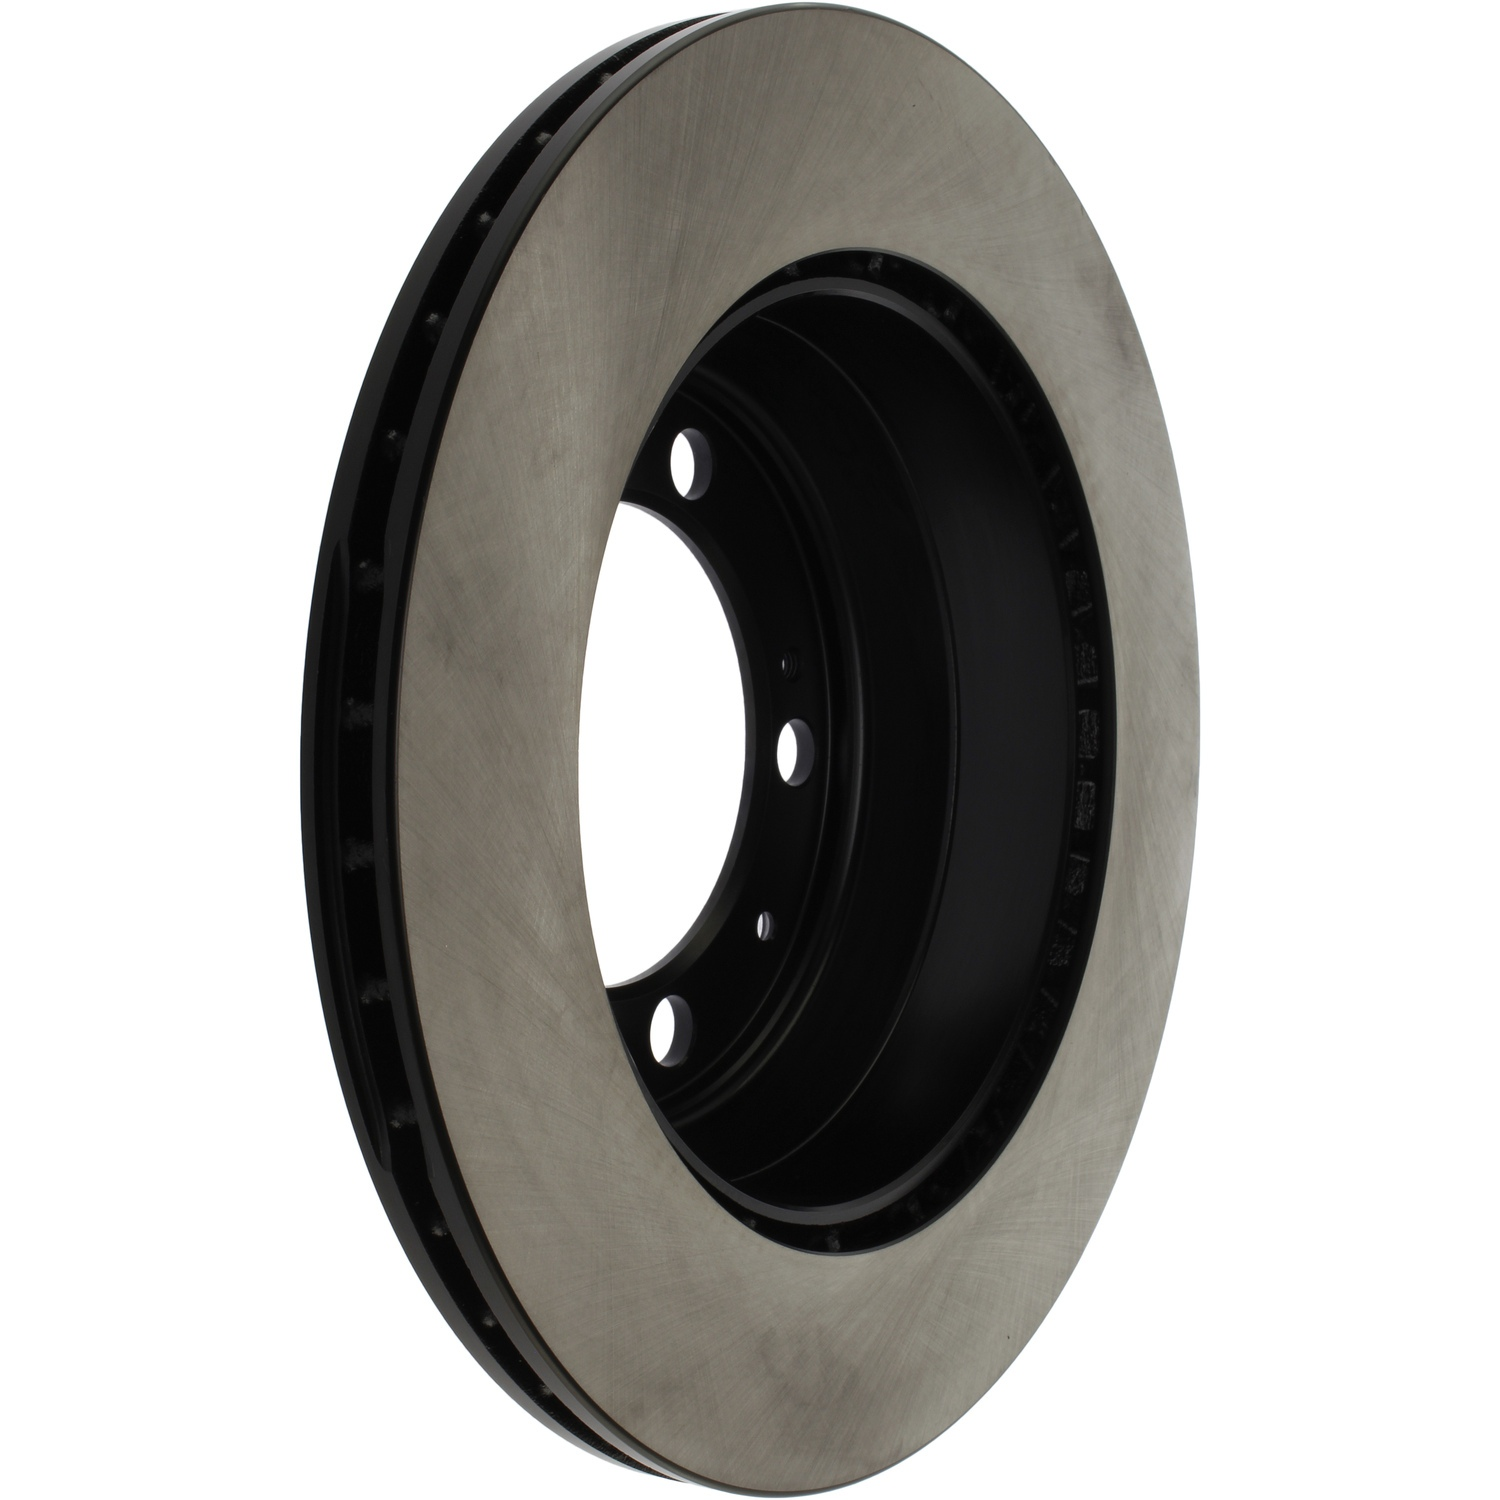 CENTRIC PARTS - High Carbon Alloy Brake Disc-Preferred (Rear) - CEC 125.37007